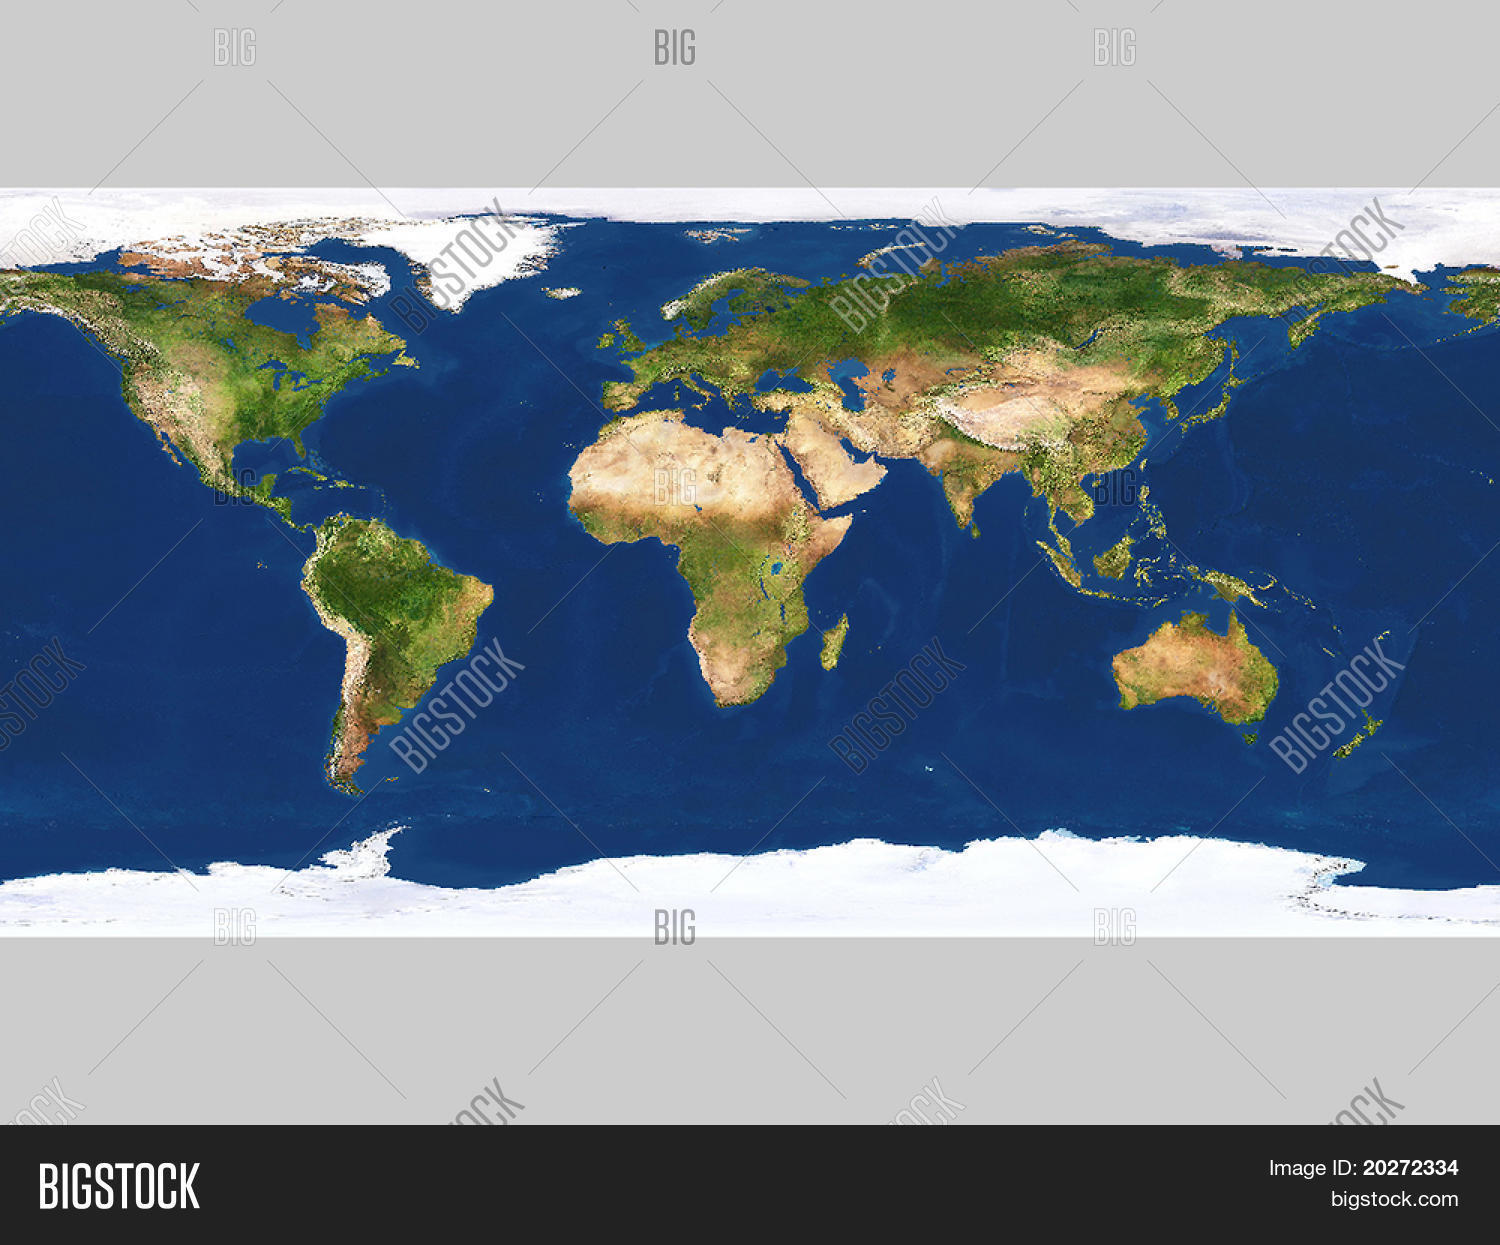 Real Looking Earth Map Image Photo Free Trial Bigstock